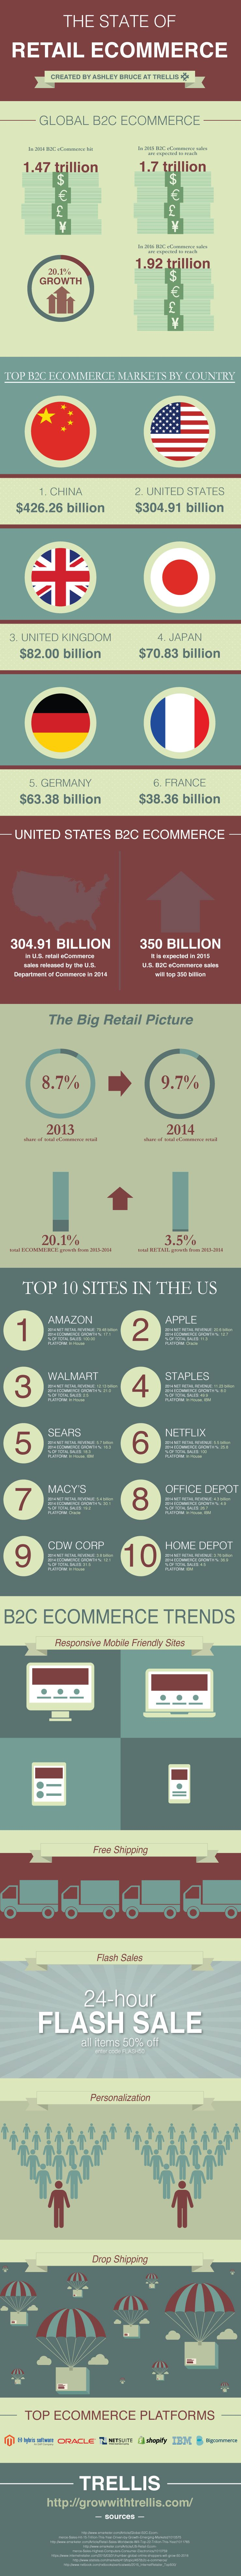 The State of Retail eCommerce #Infographic